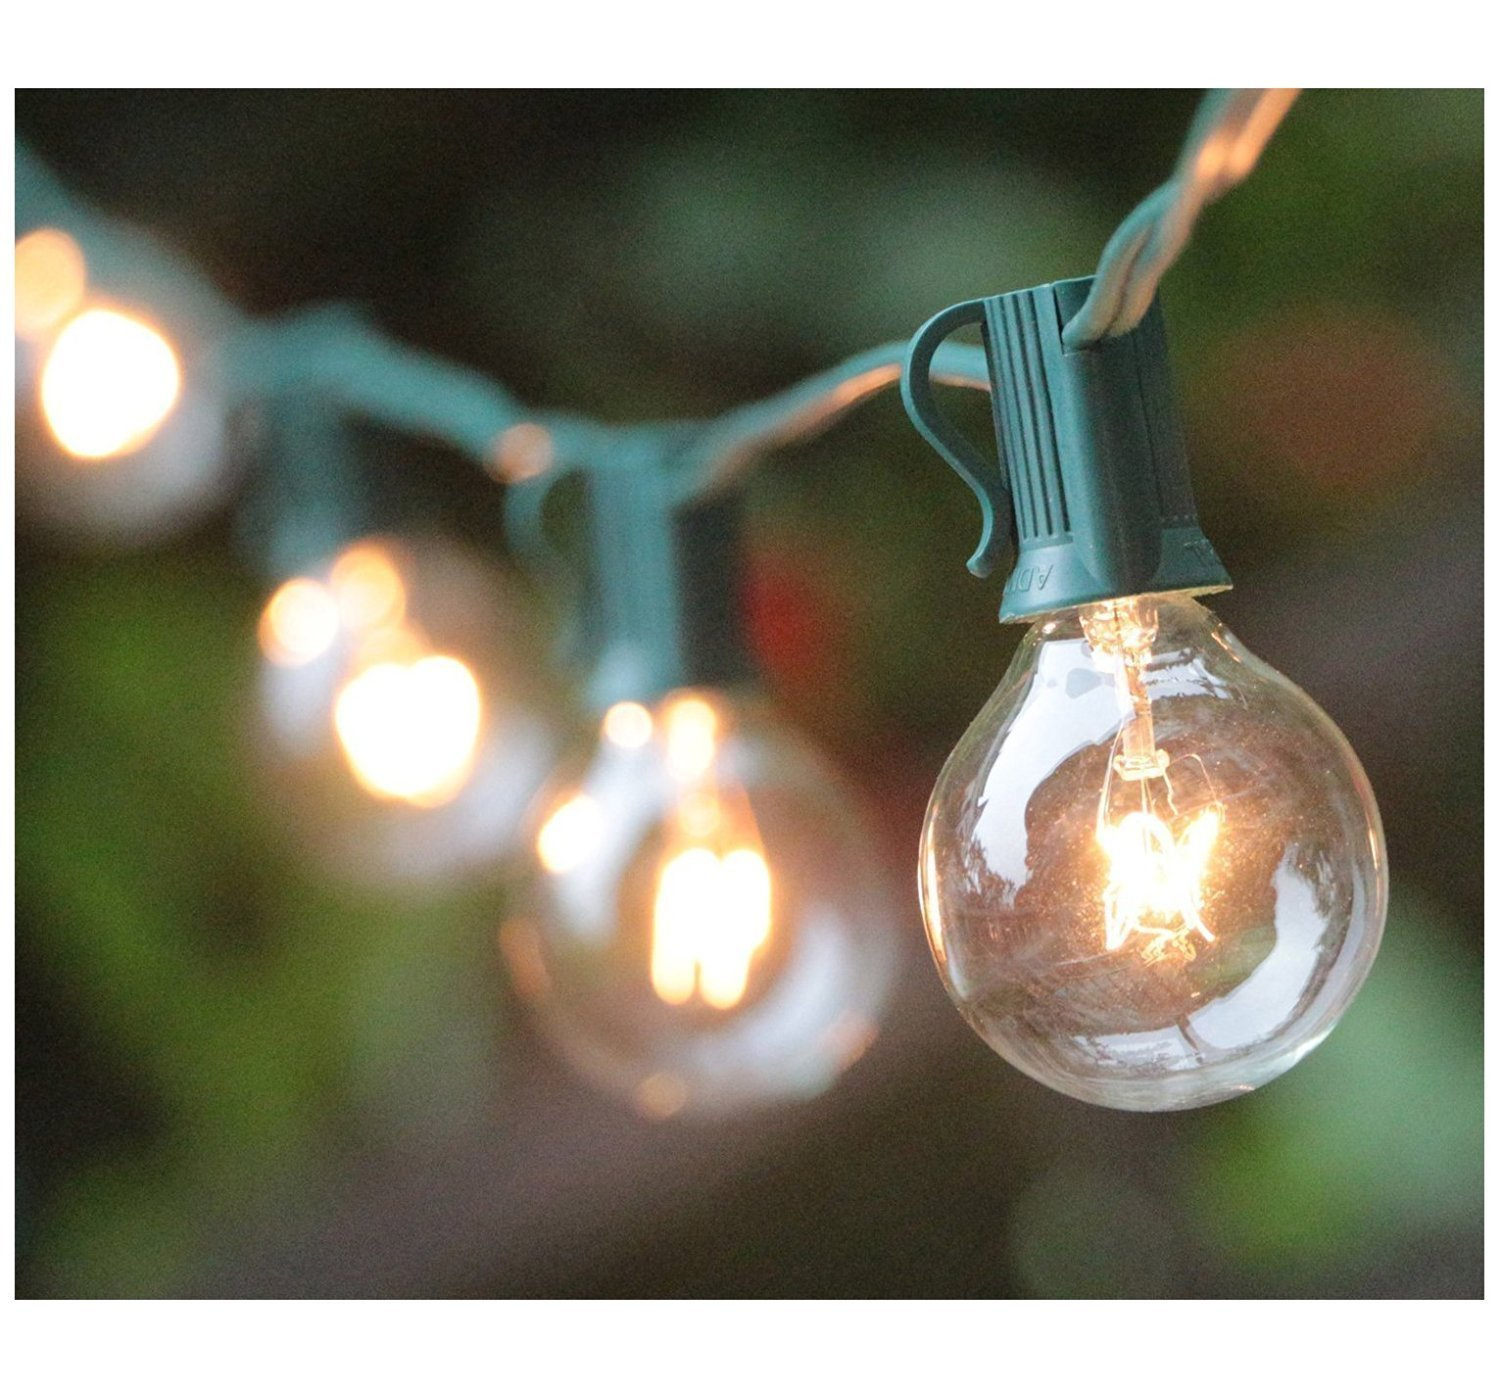 25ft g40 globe string lights with 25 clear bulbs outdoor market 25ft g40 globe string lights with 25 clear bulbs outdoor market lights for outdoor and indoor decoration garden party wedding pergola backyard aloadofball Image collections